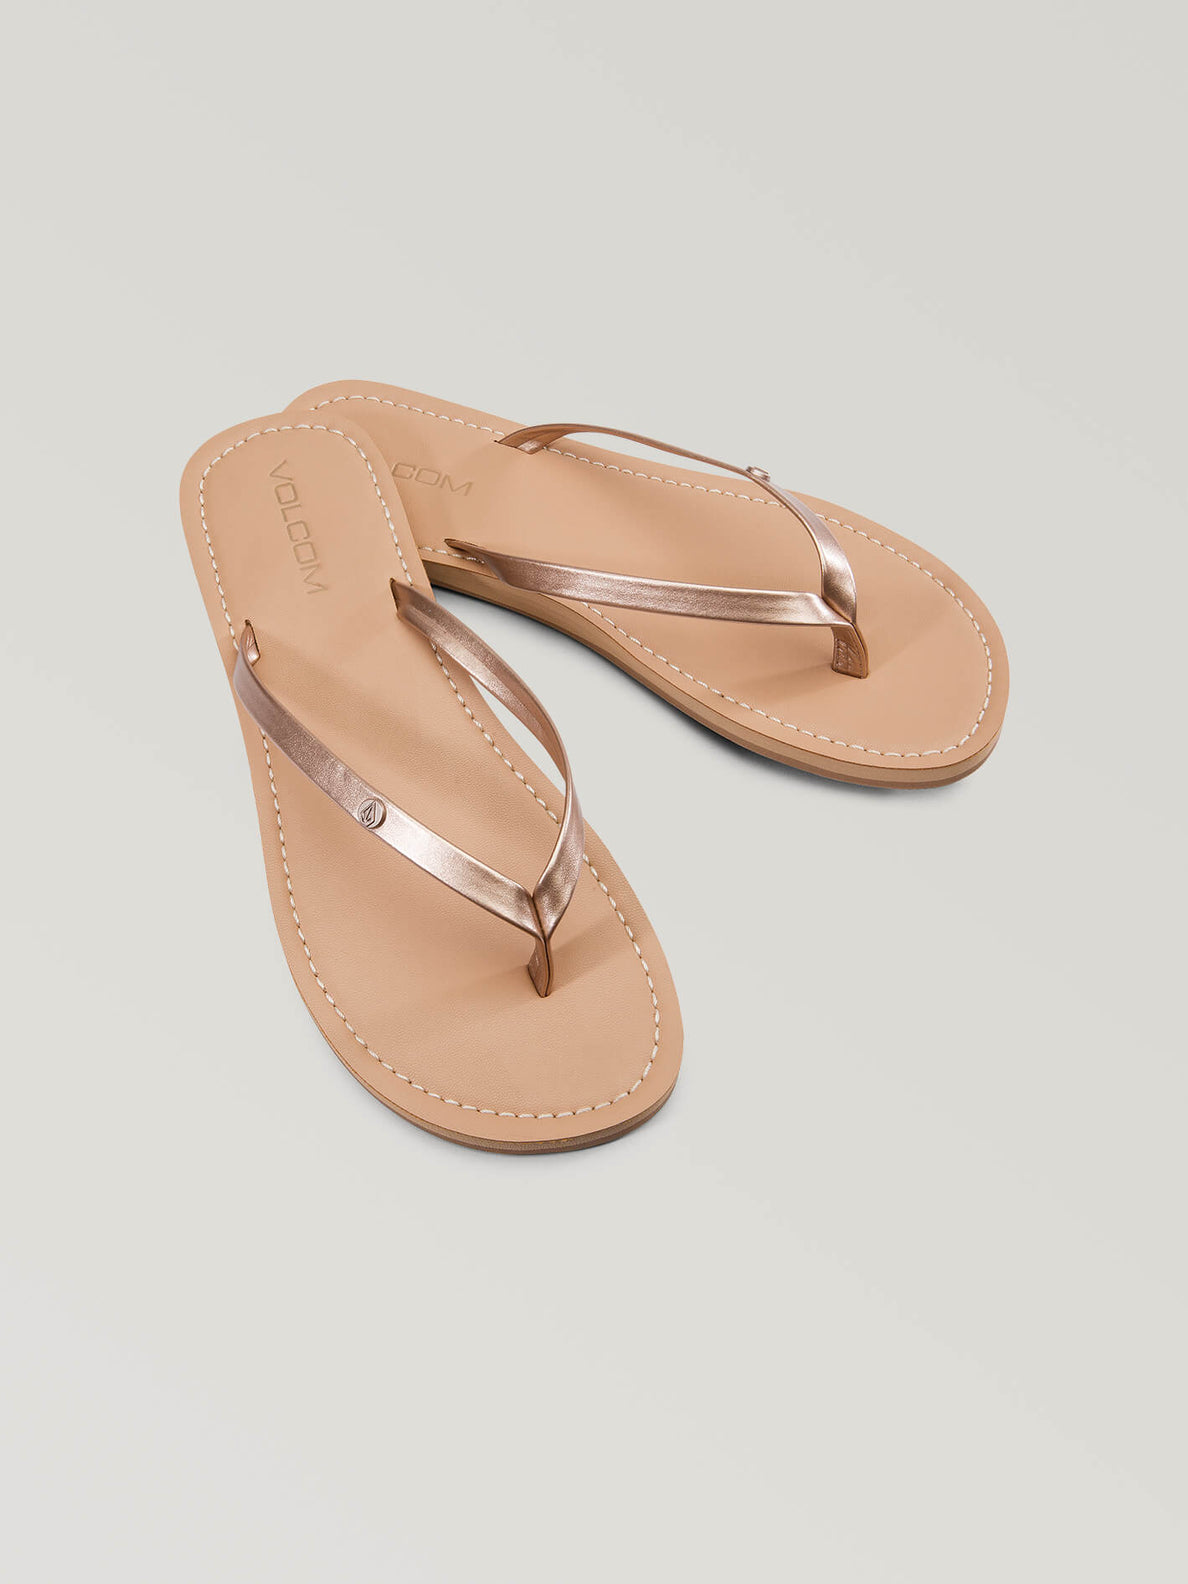 Lagos Sandals In Rose Gold, Front View